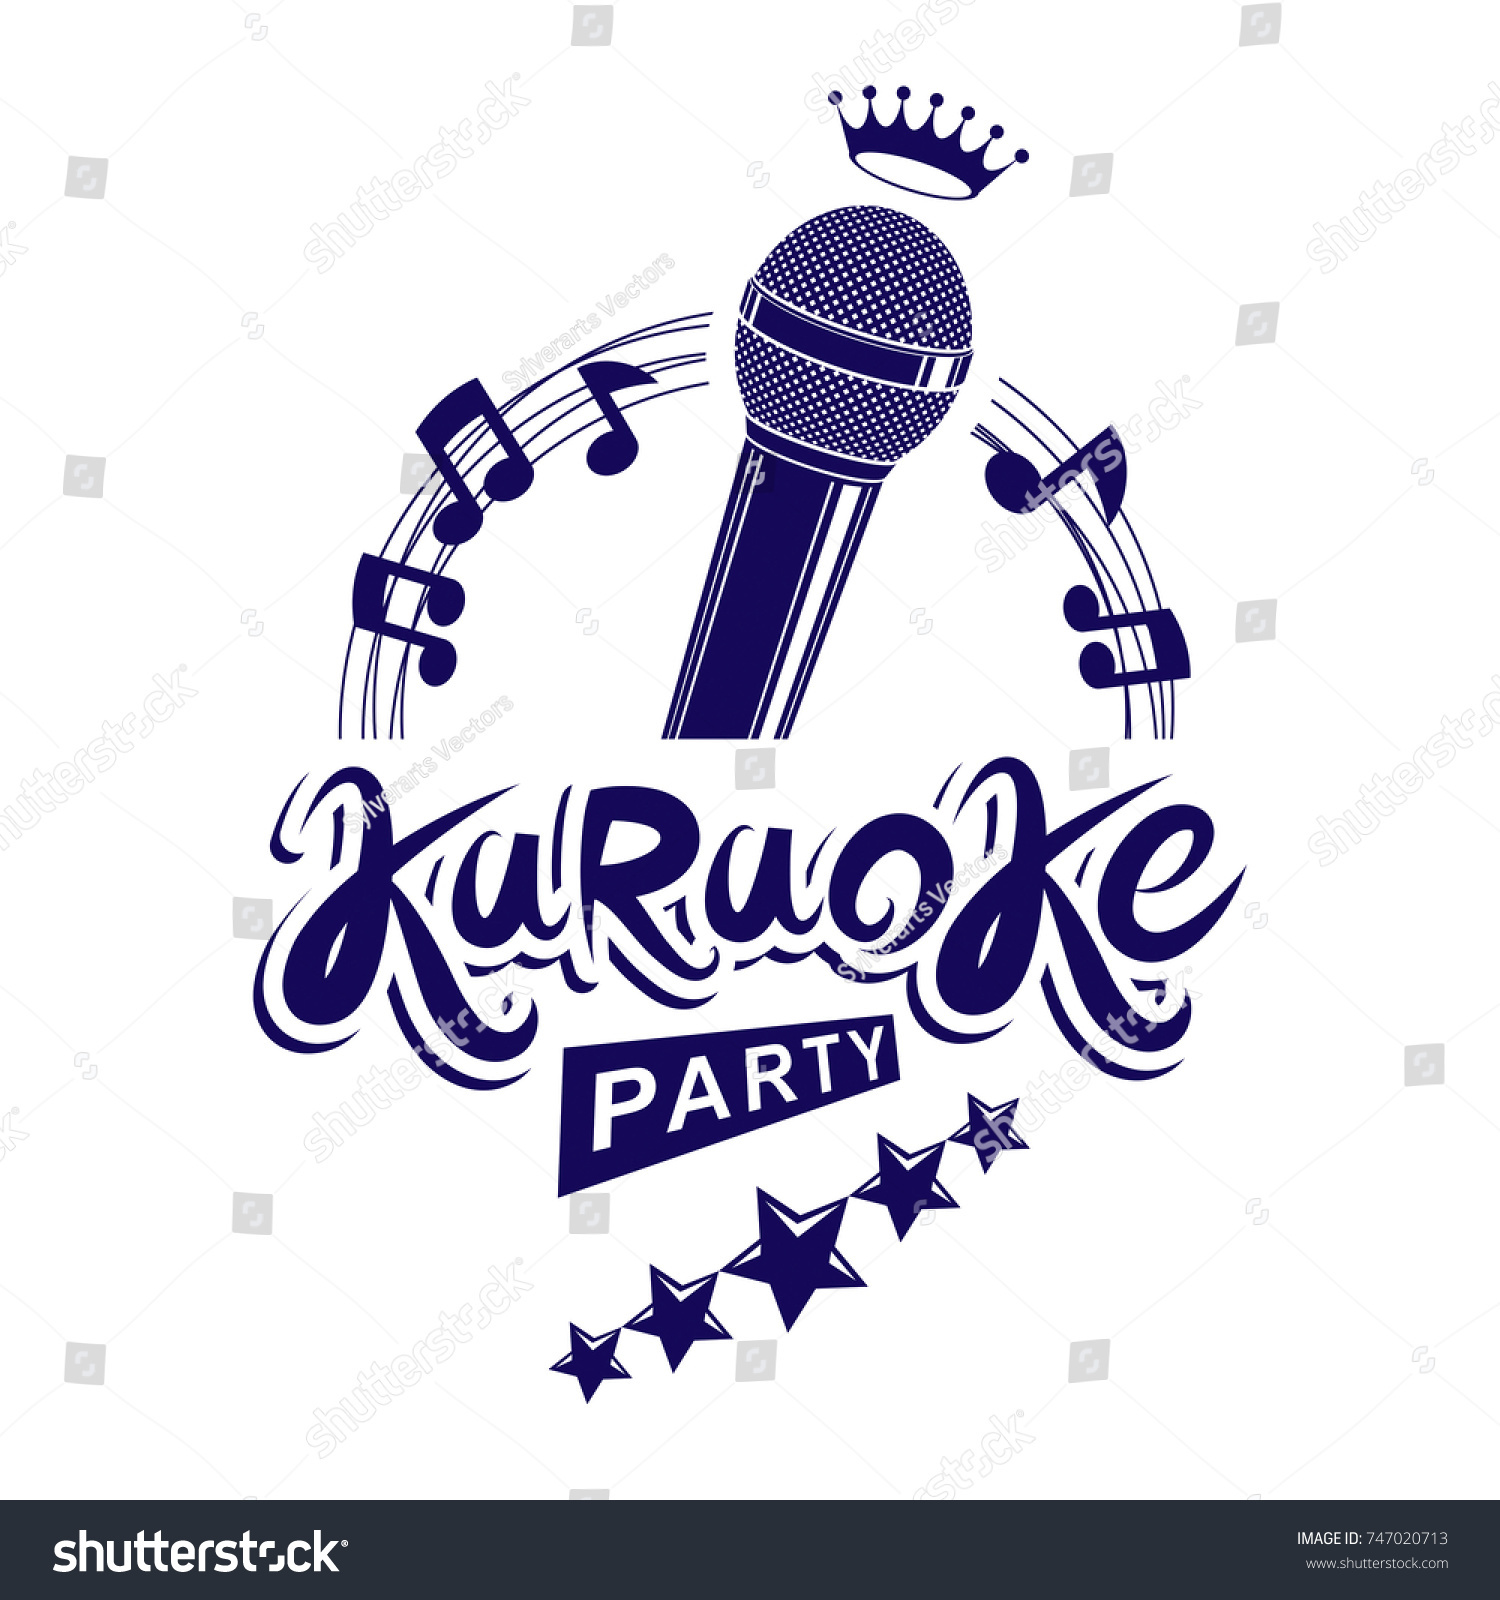 Karaoke Party Invitation Poster Live Music Stock Vector 747020713 ...